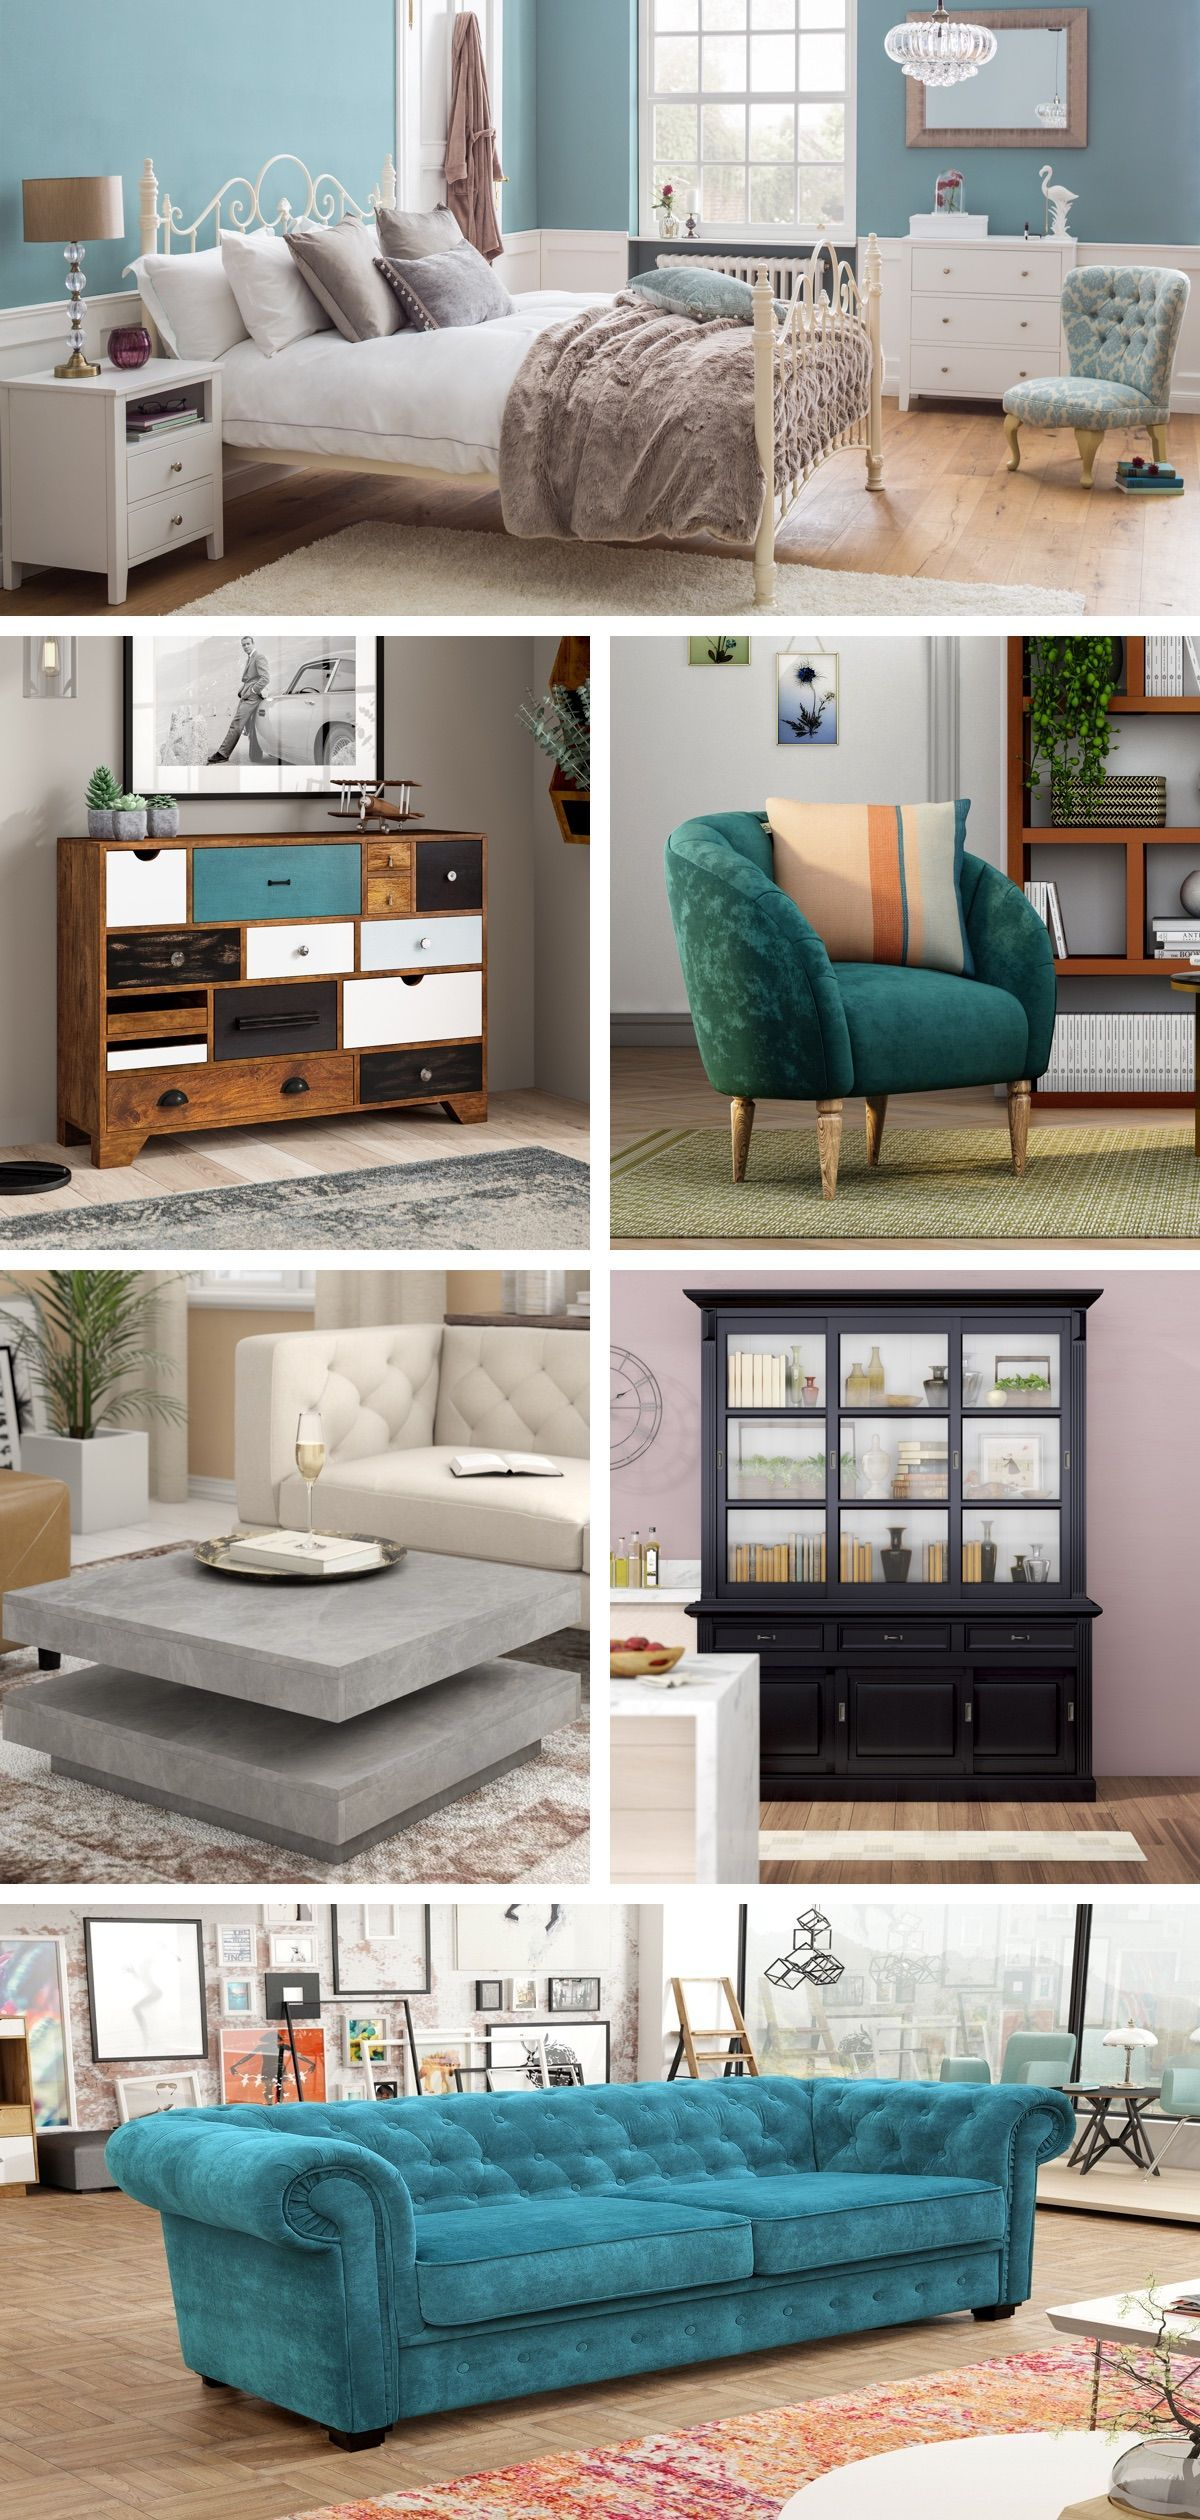 Check Out Wayfair For Curated S Inspiration All